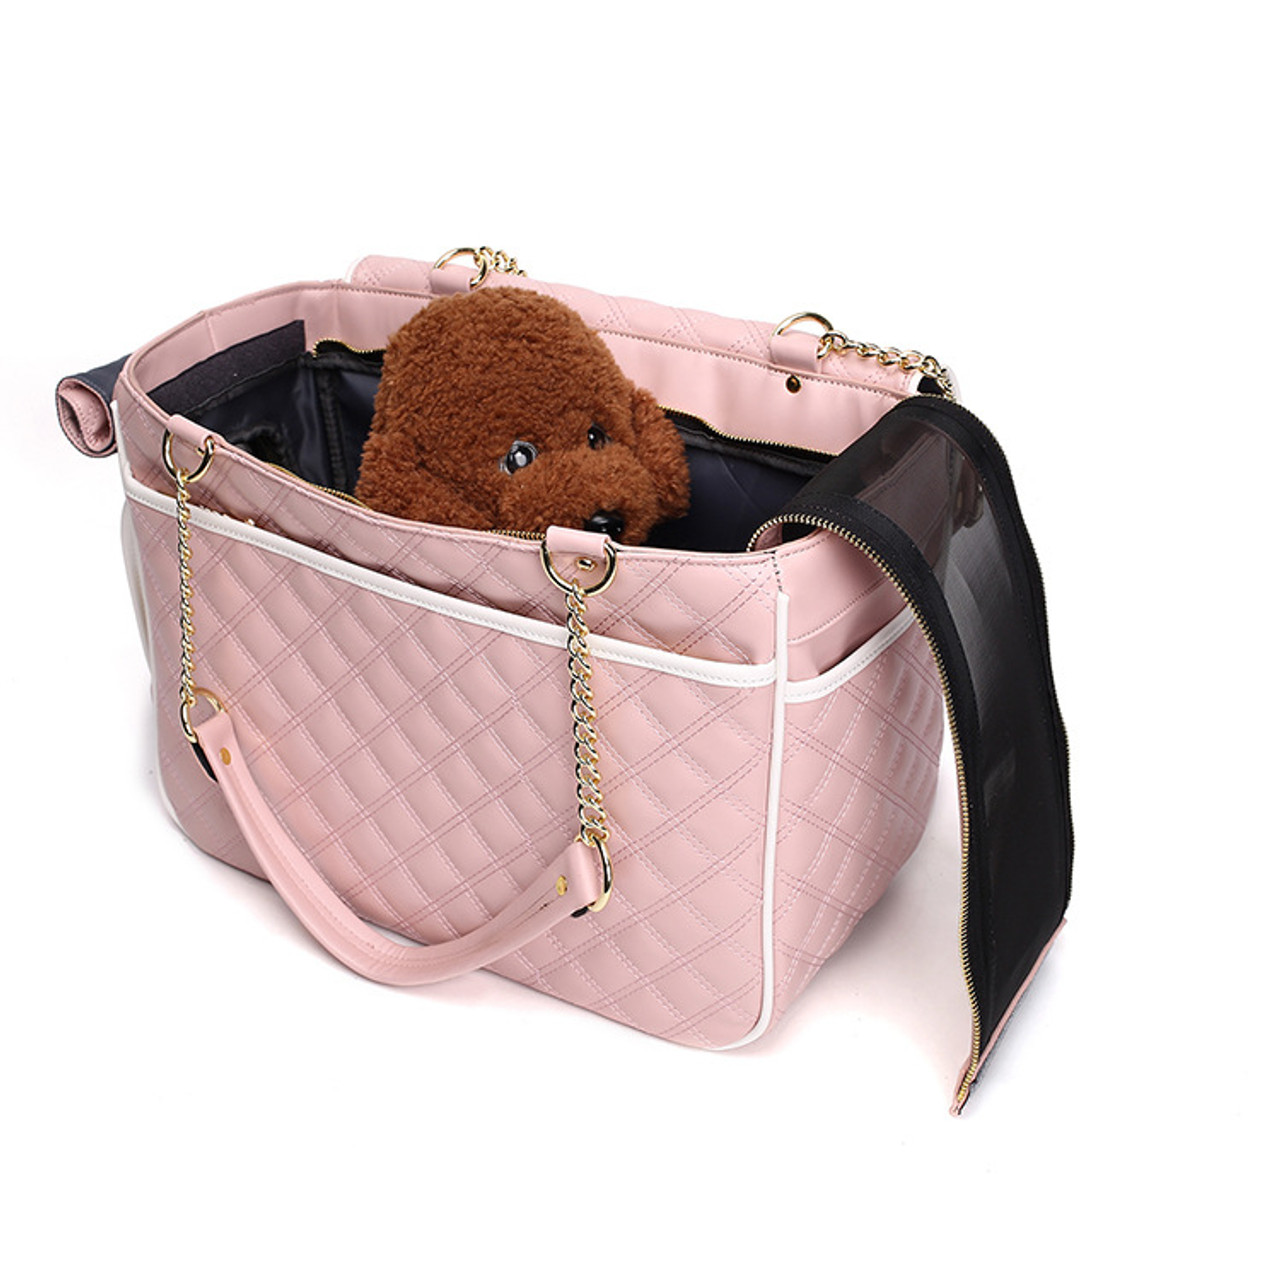 a408543098a1 Pink Dog Carriers Bag Pet Totes Purse Puppy Handbag Cat Cage Doggy Pouch